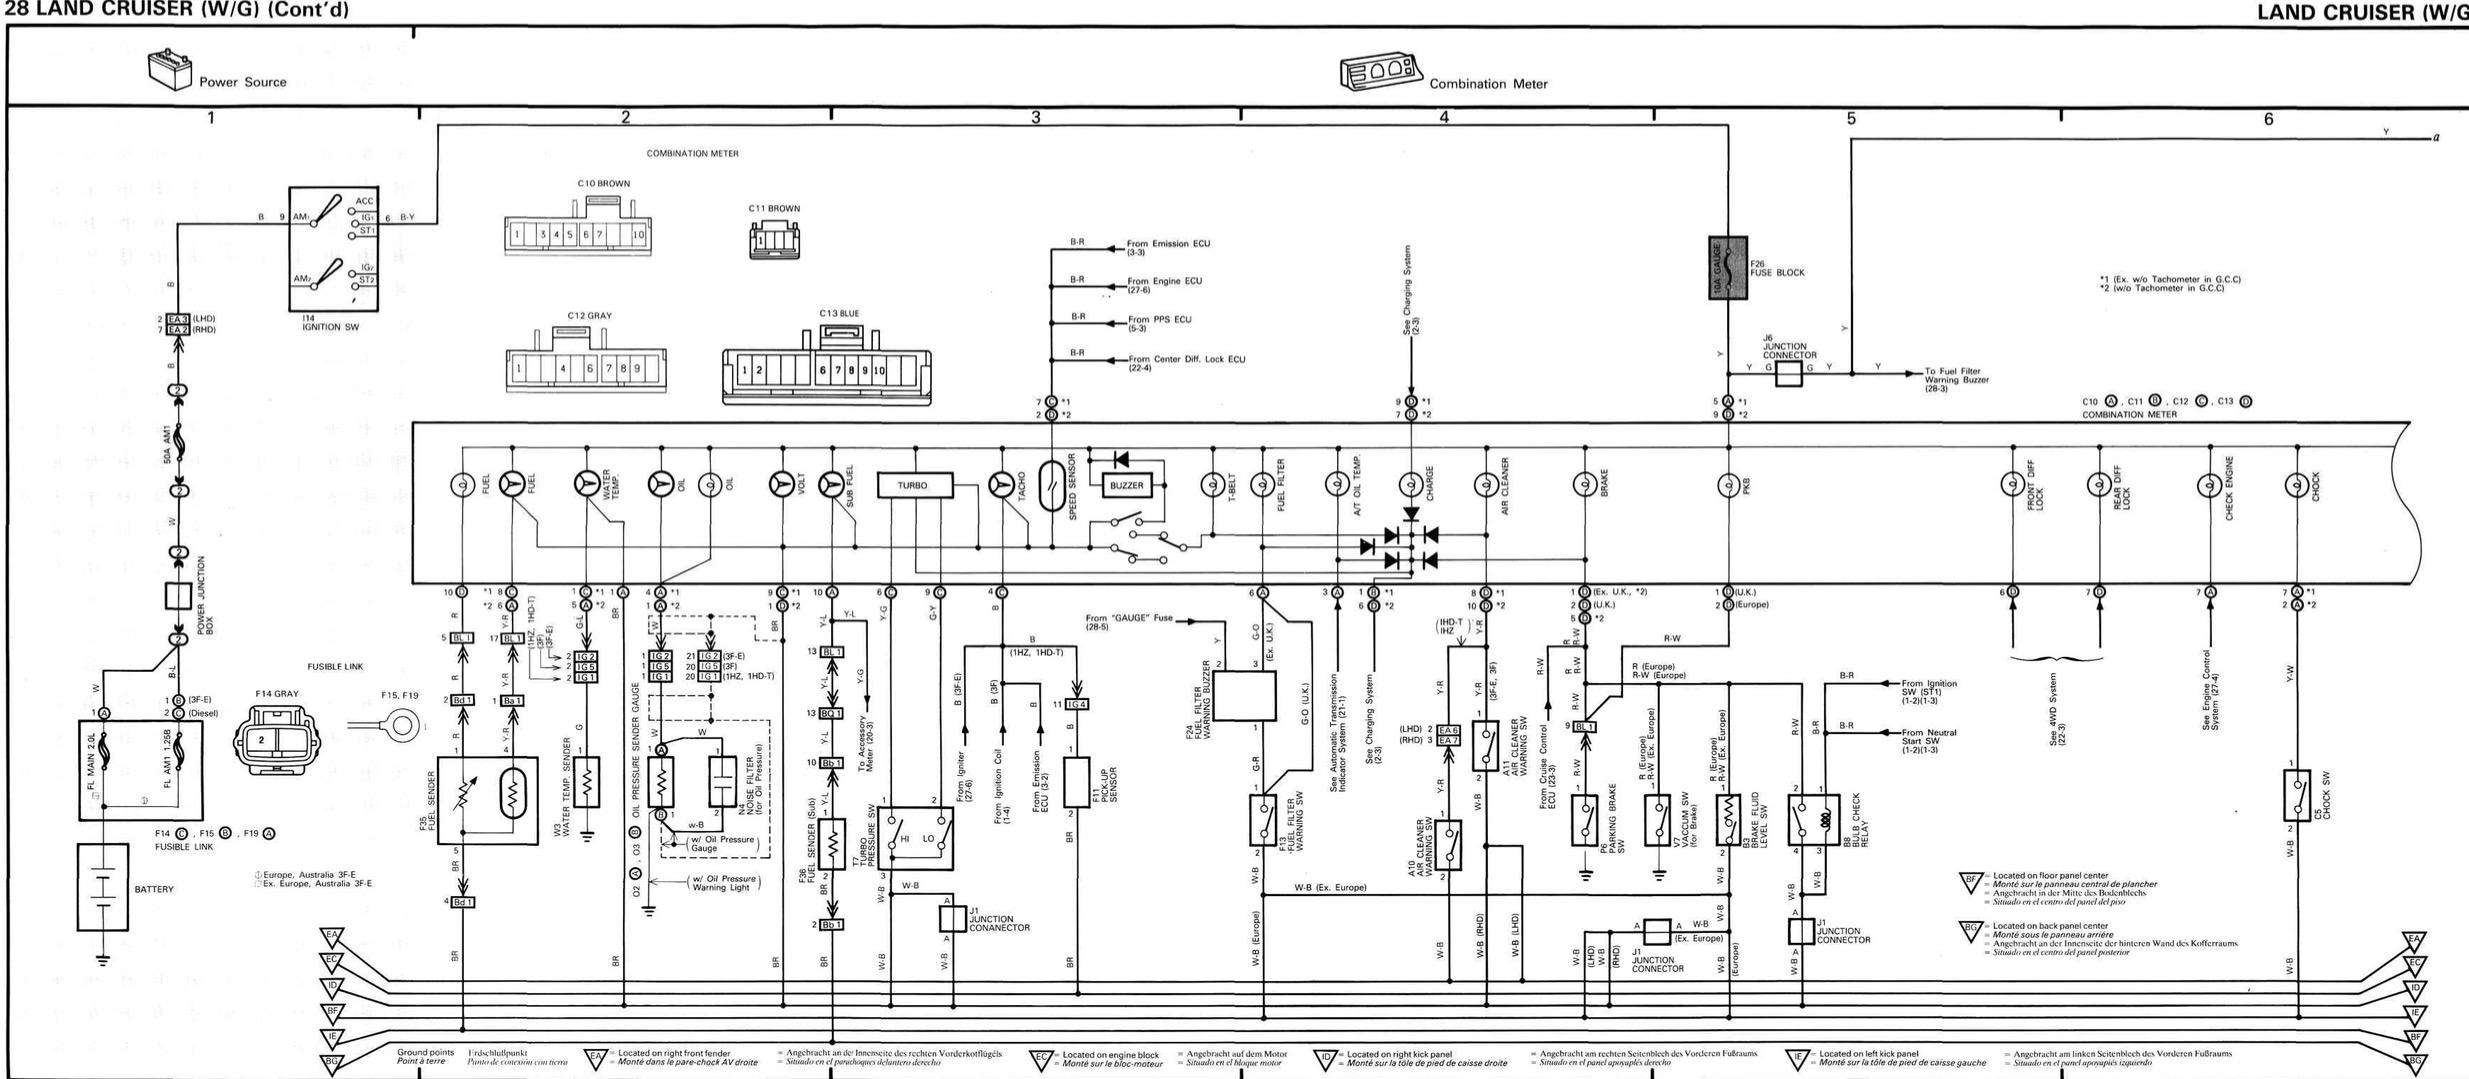 oil pressure sender wiring schematic? land cruiser club